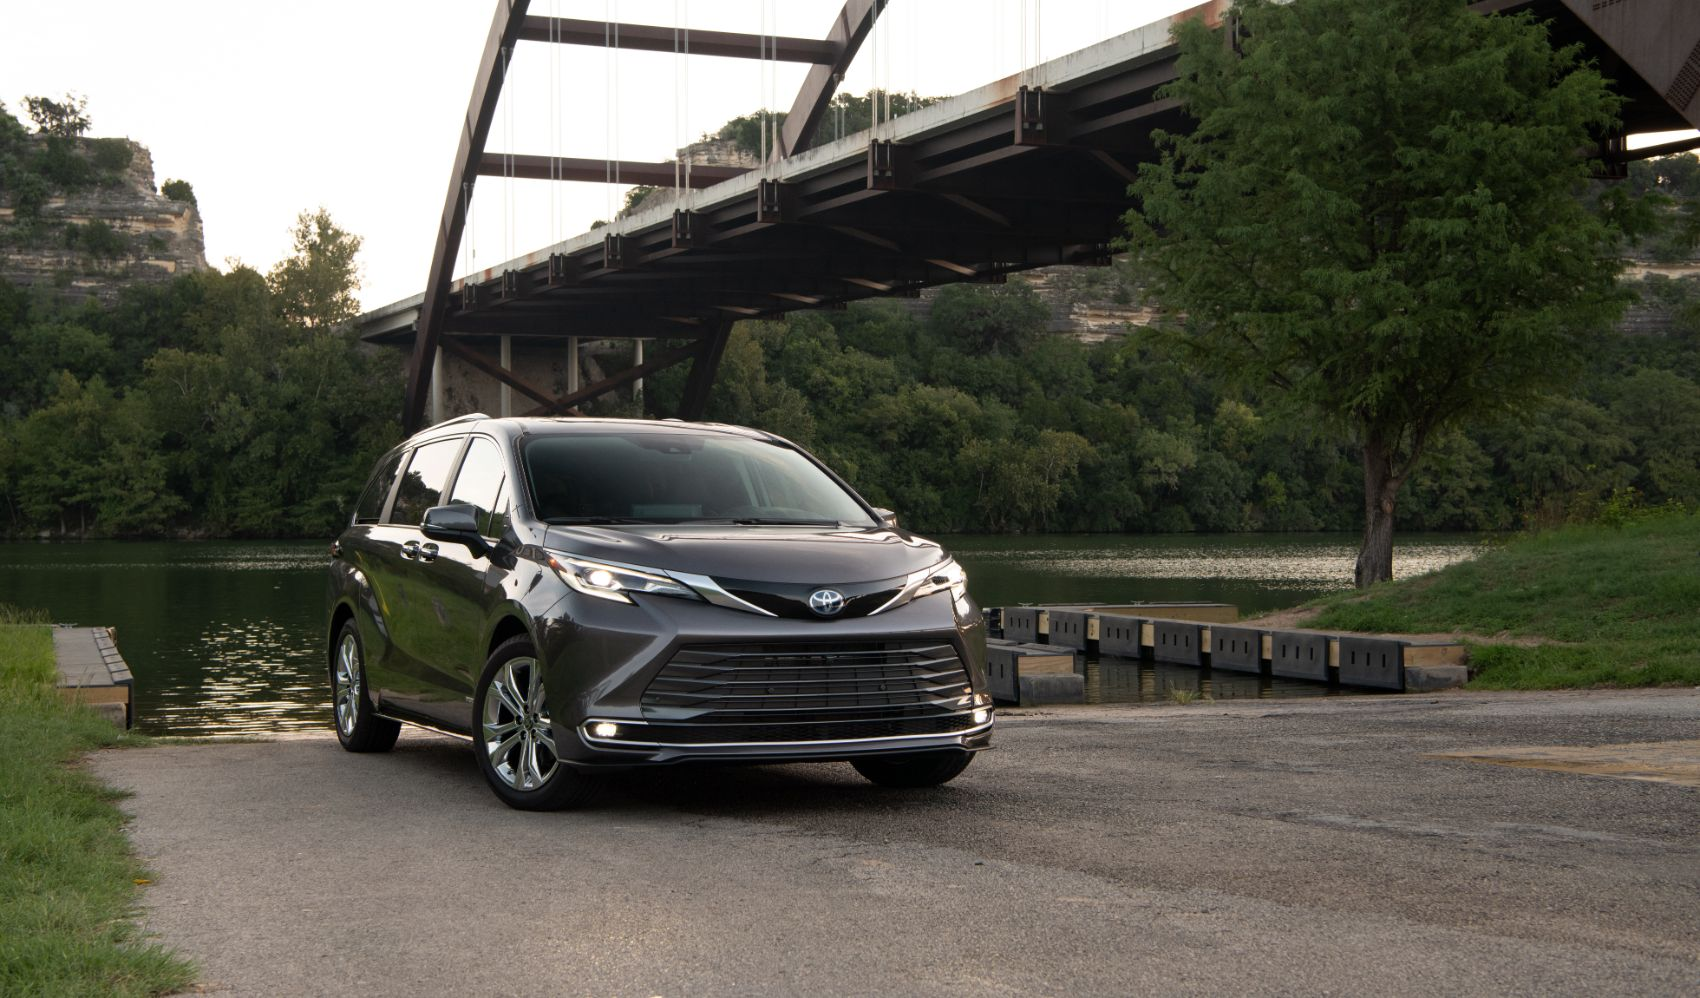 2021 Toyota Sienna Overview: Trim Levels, Tech & Safety Features, Pricing & More